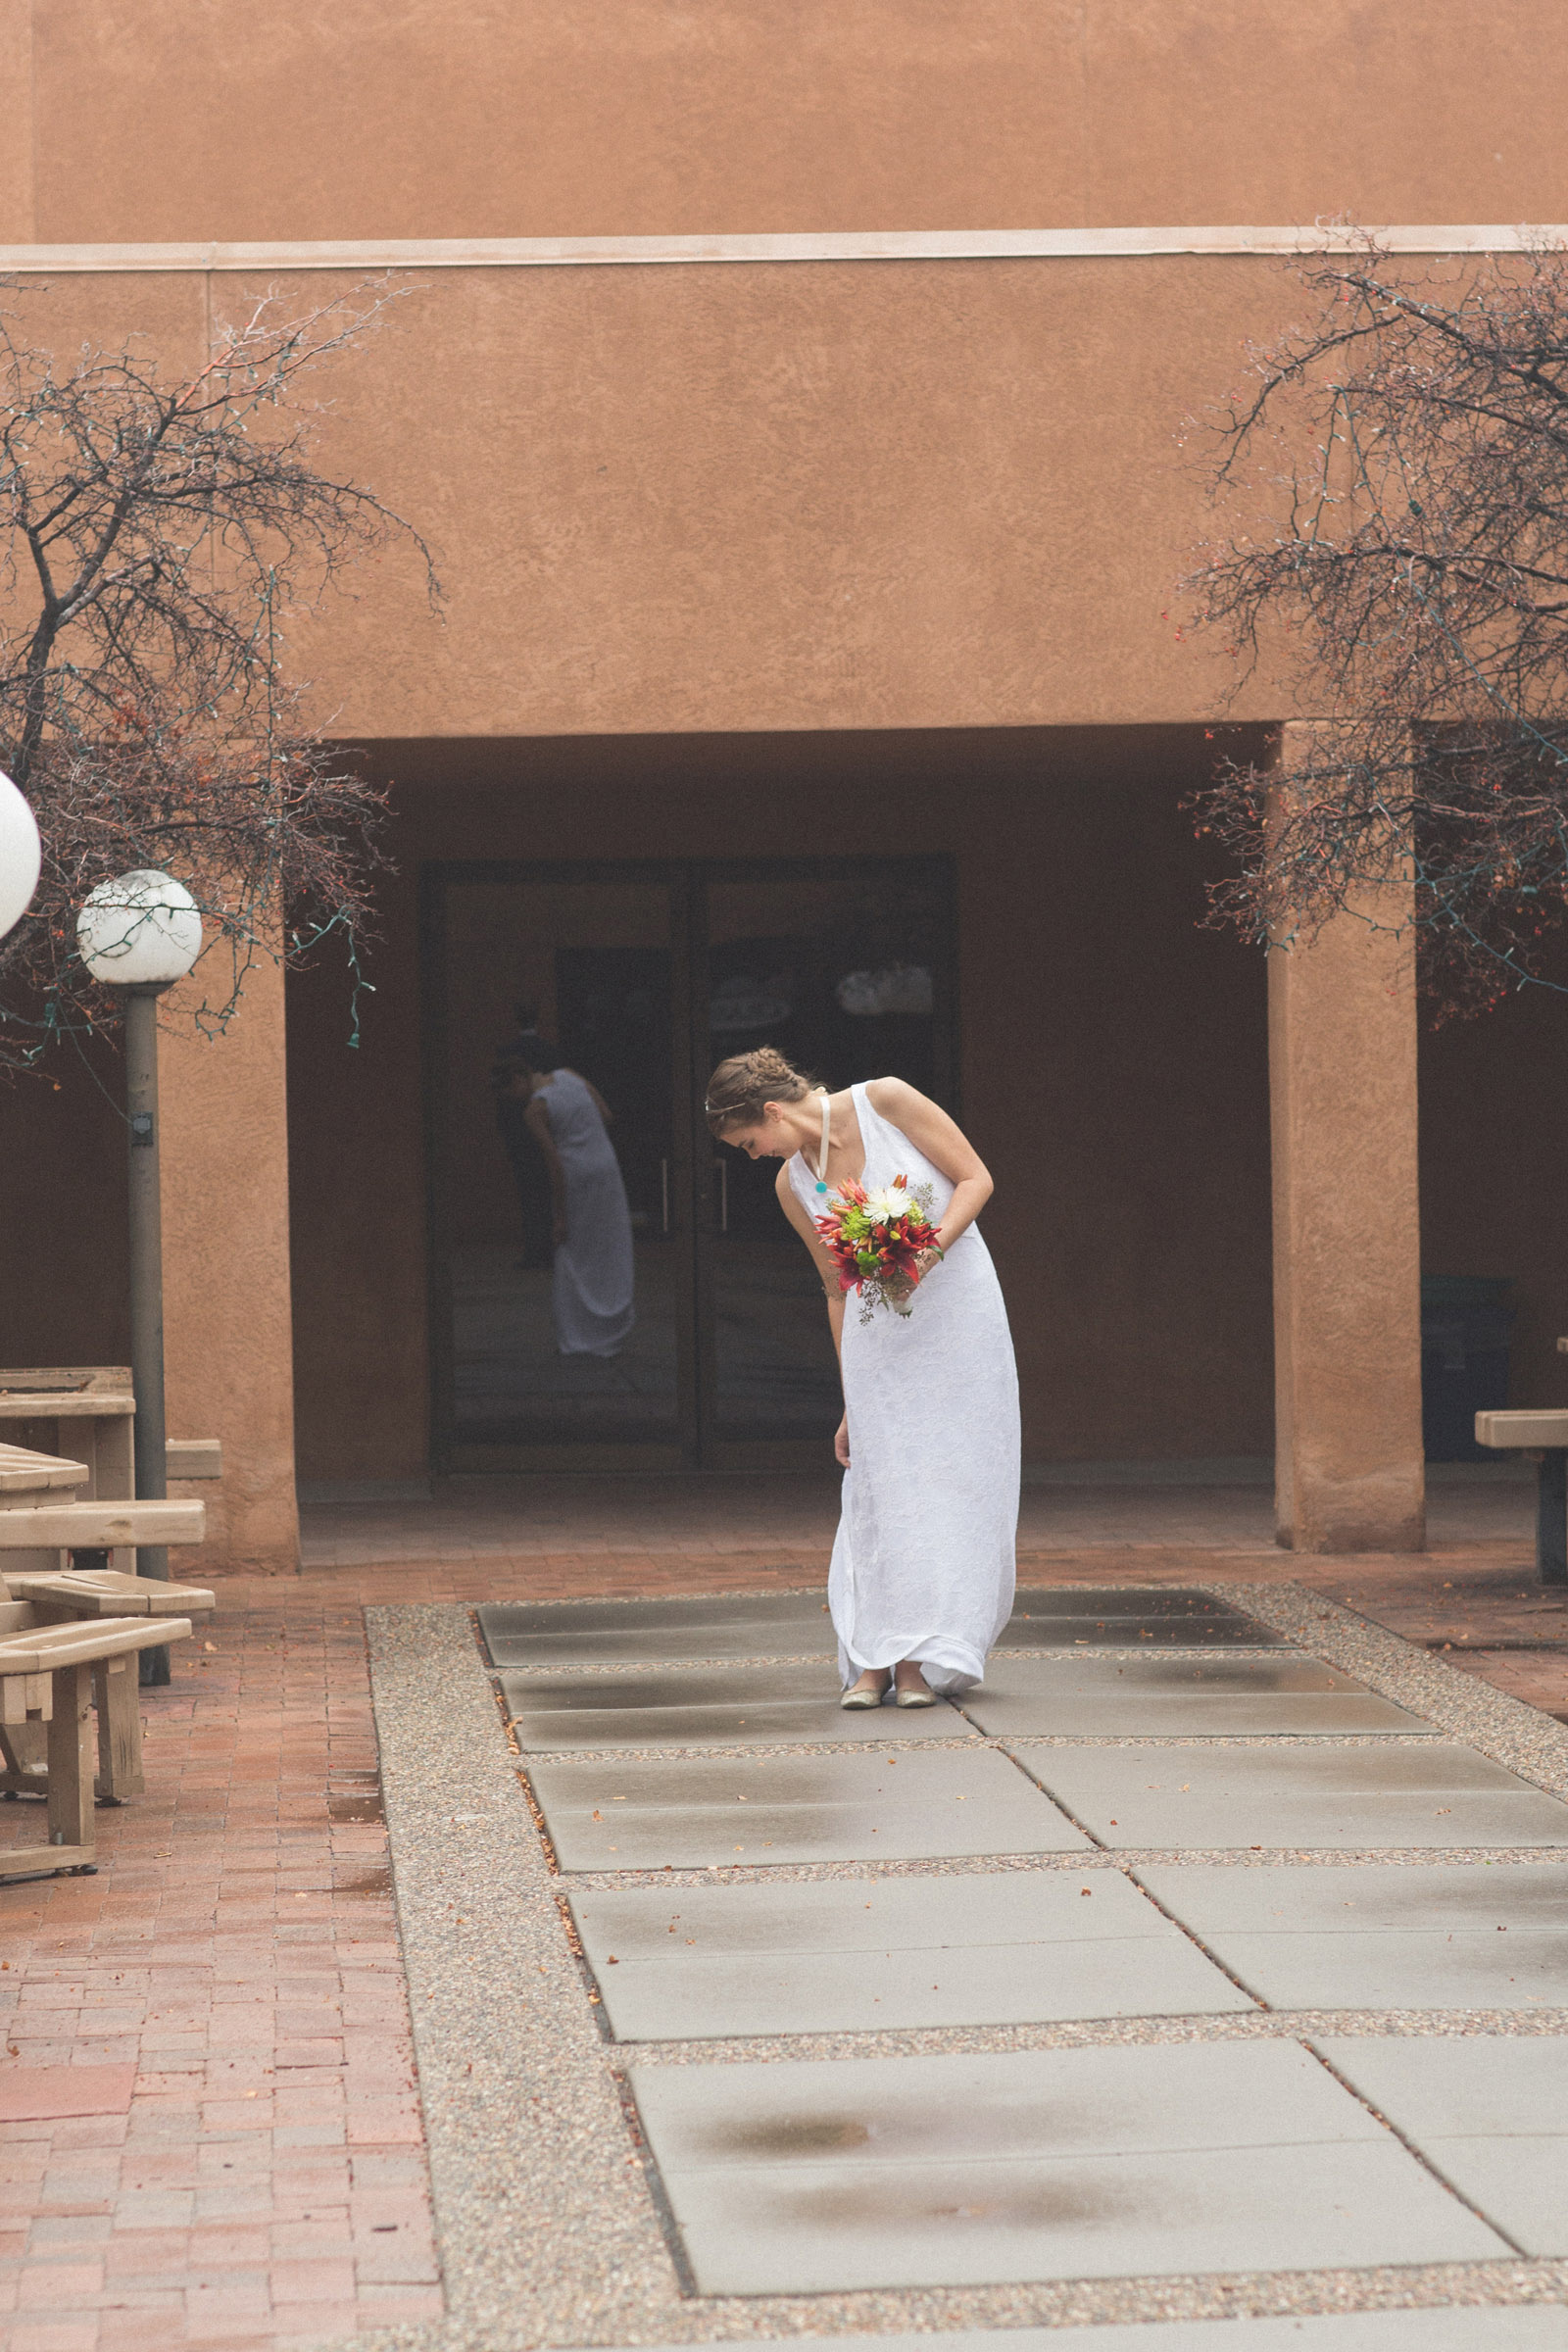 040-bride-and-groom-see-eachother-for-the-first-look-session-before-the-ceremony-in-albuquerque-nm